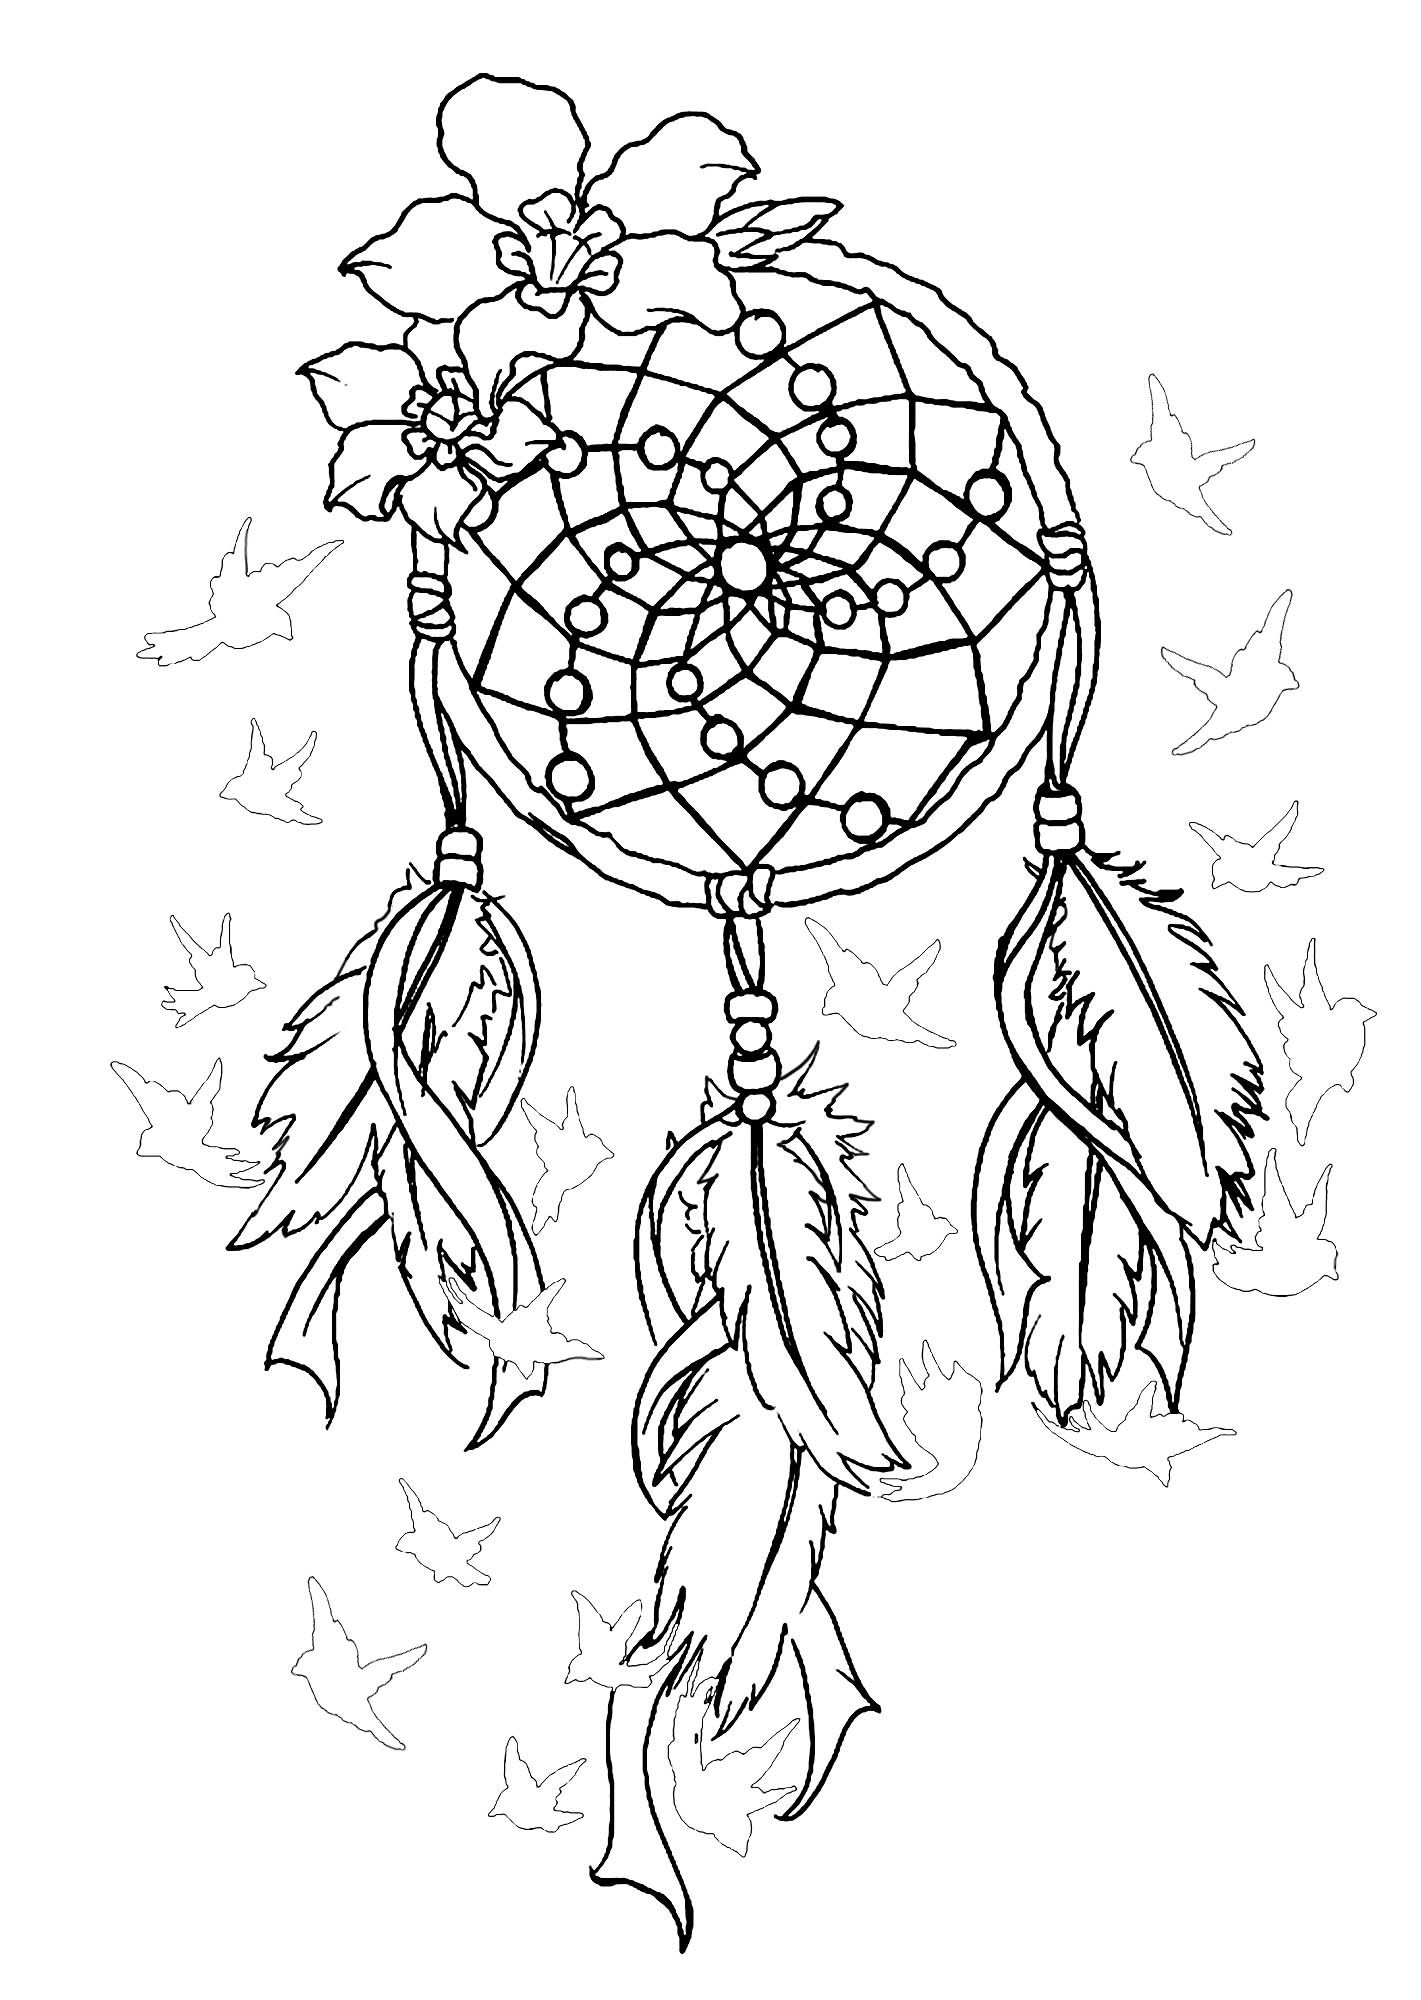 dreamcatcher mandala coloring pages | Dreamcatcher to print 2 | Zen and Anti stress - Coloring ...